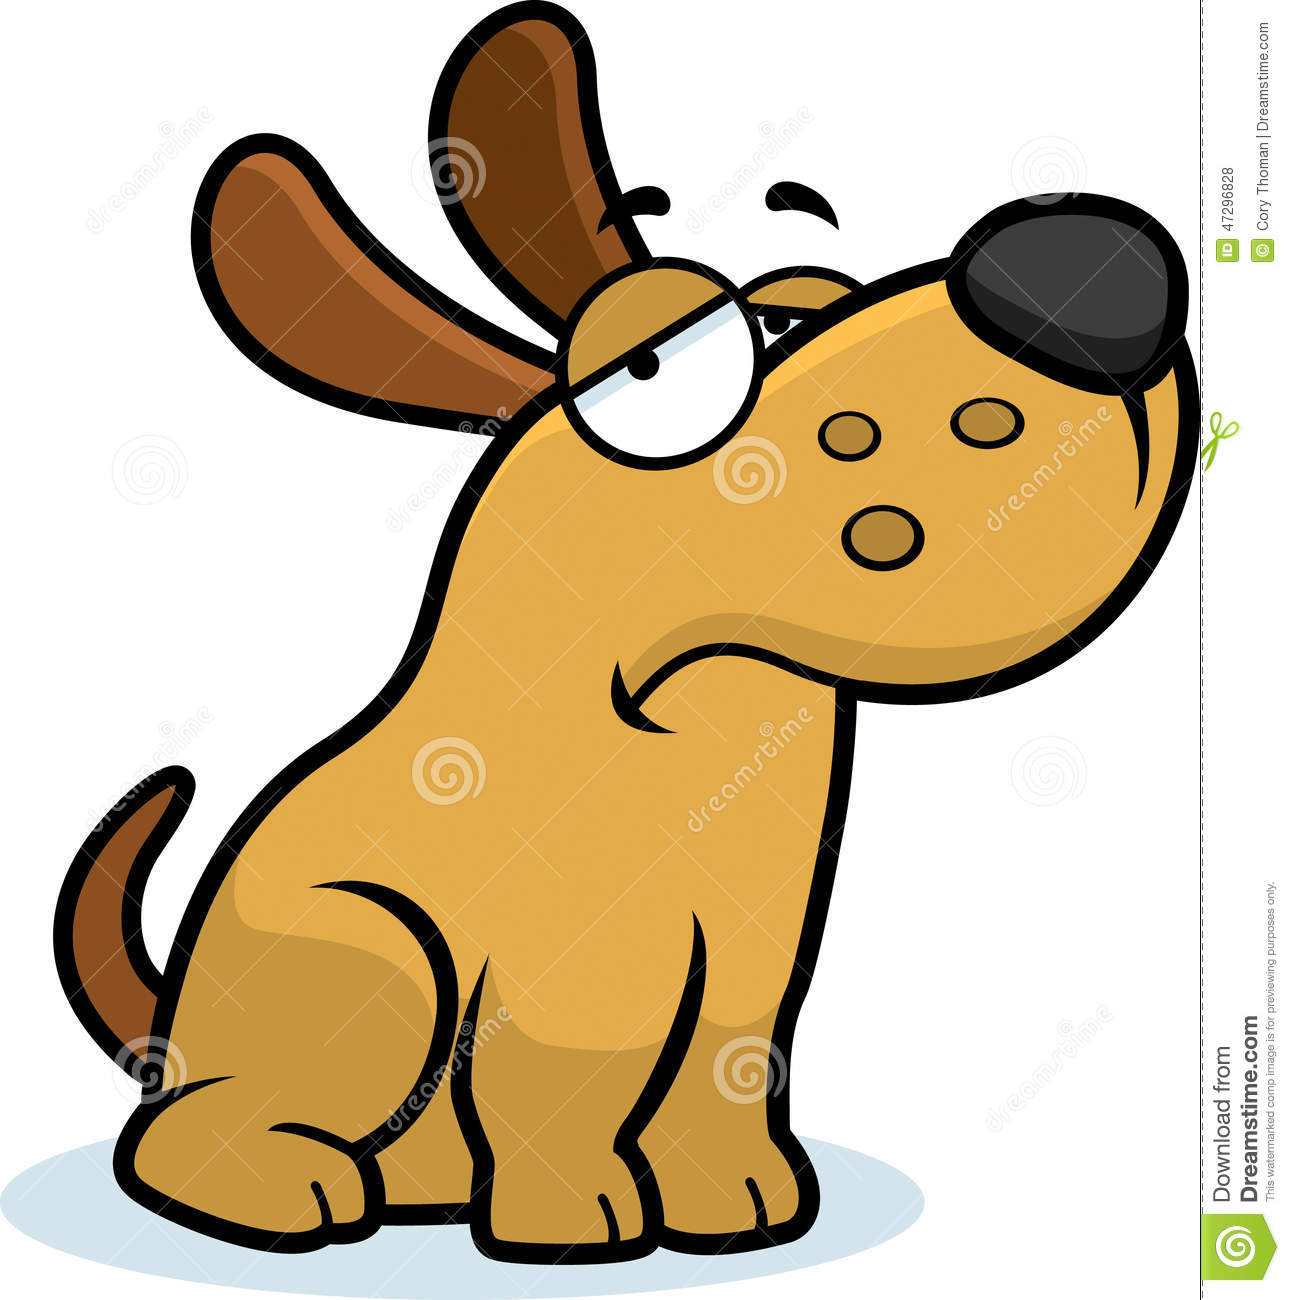 sad cartoon dog stock vector illustration of vector 47296828 rh dreamstime com depression black dog cartoon sad dog cartoon character